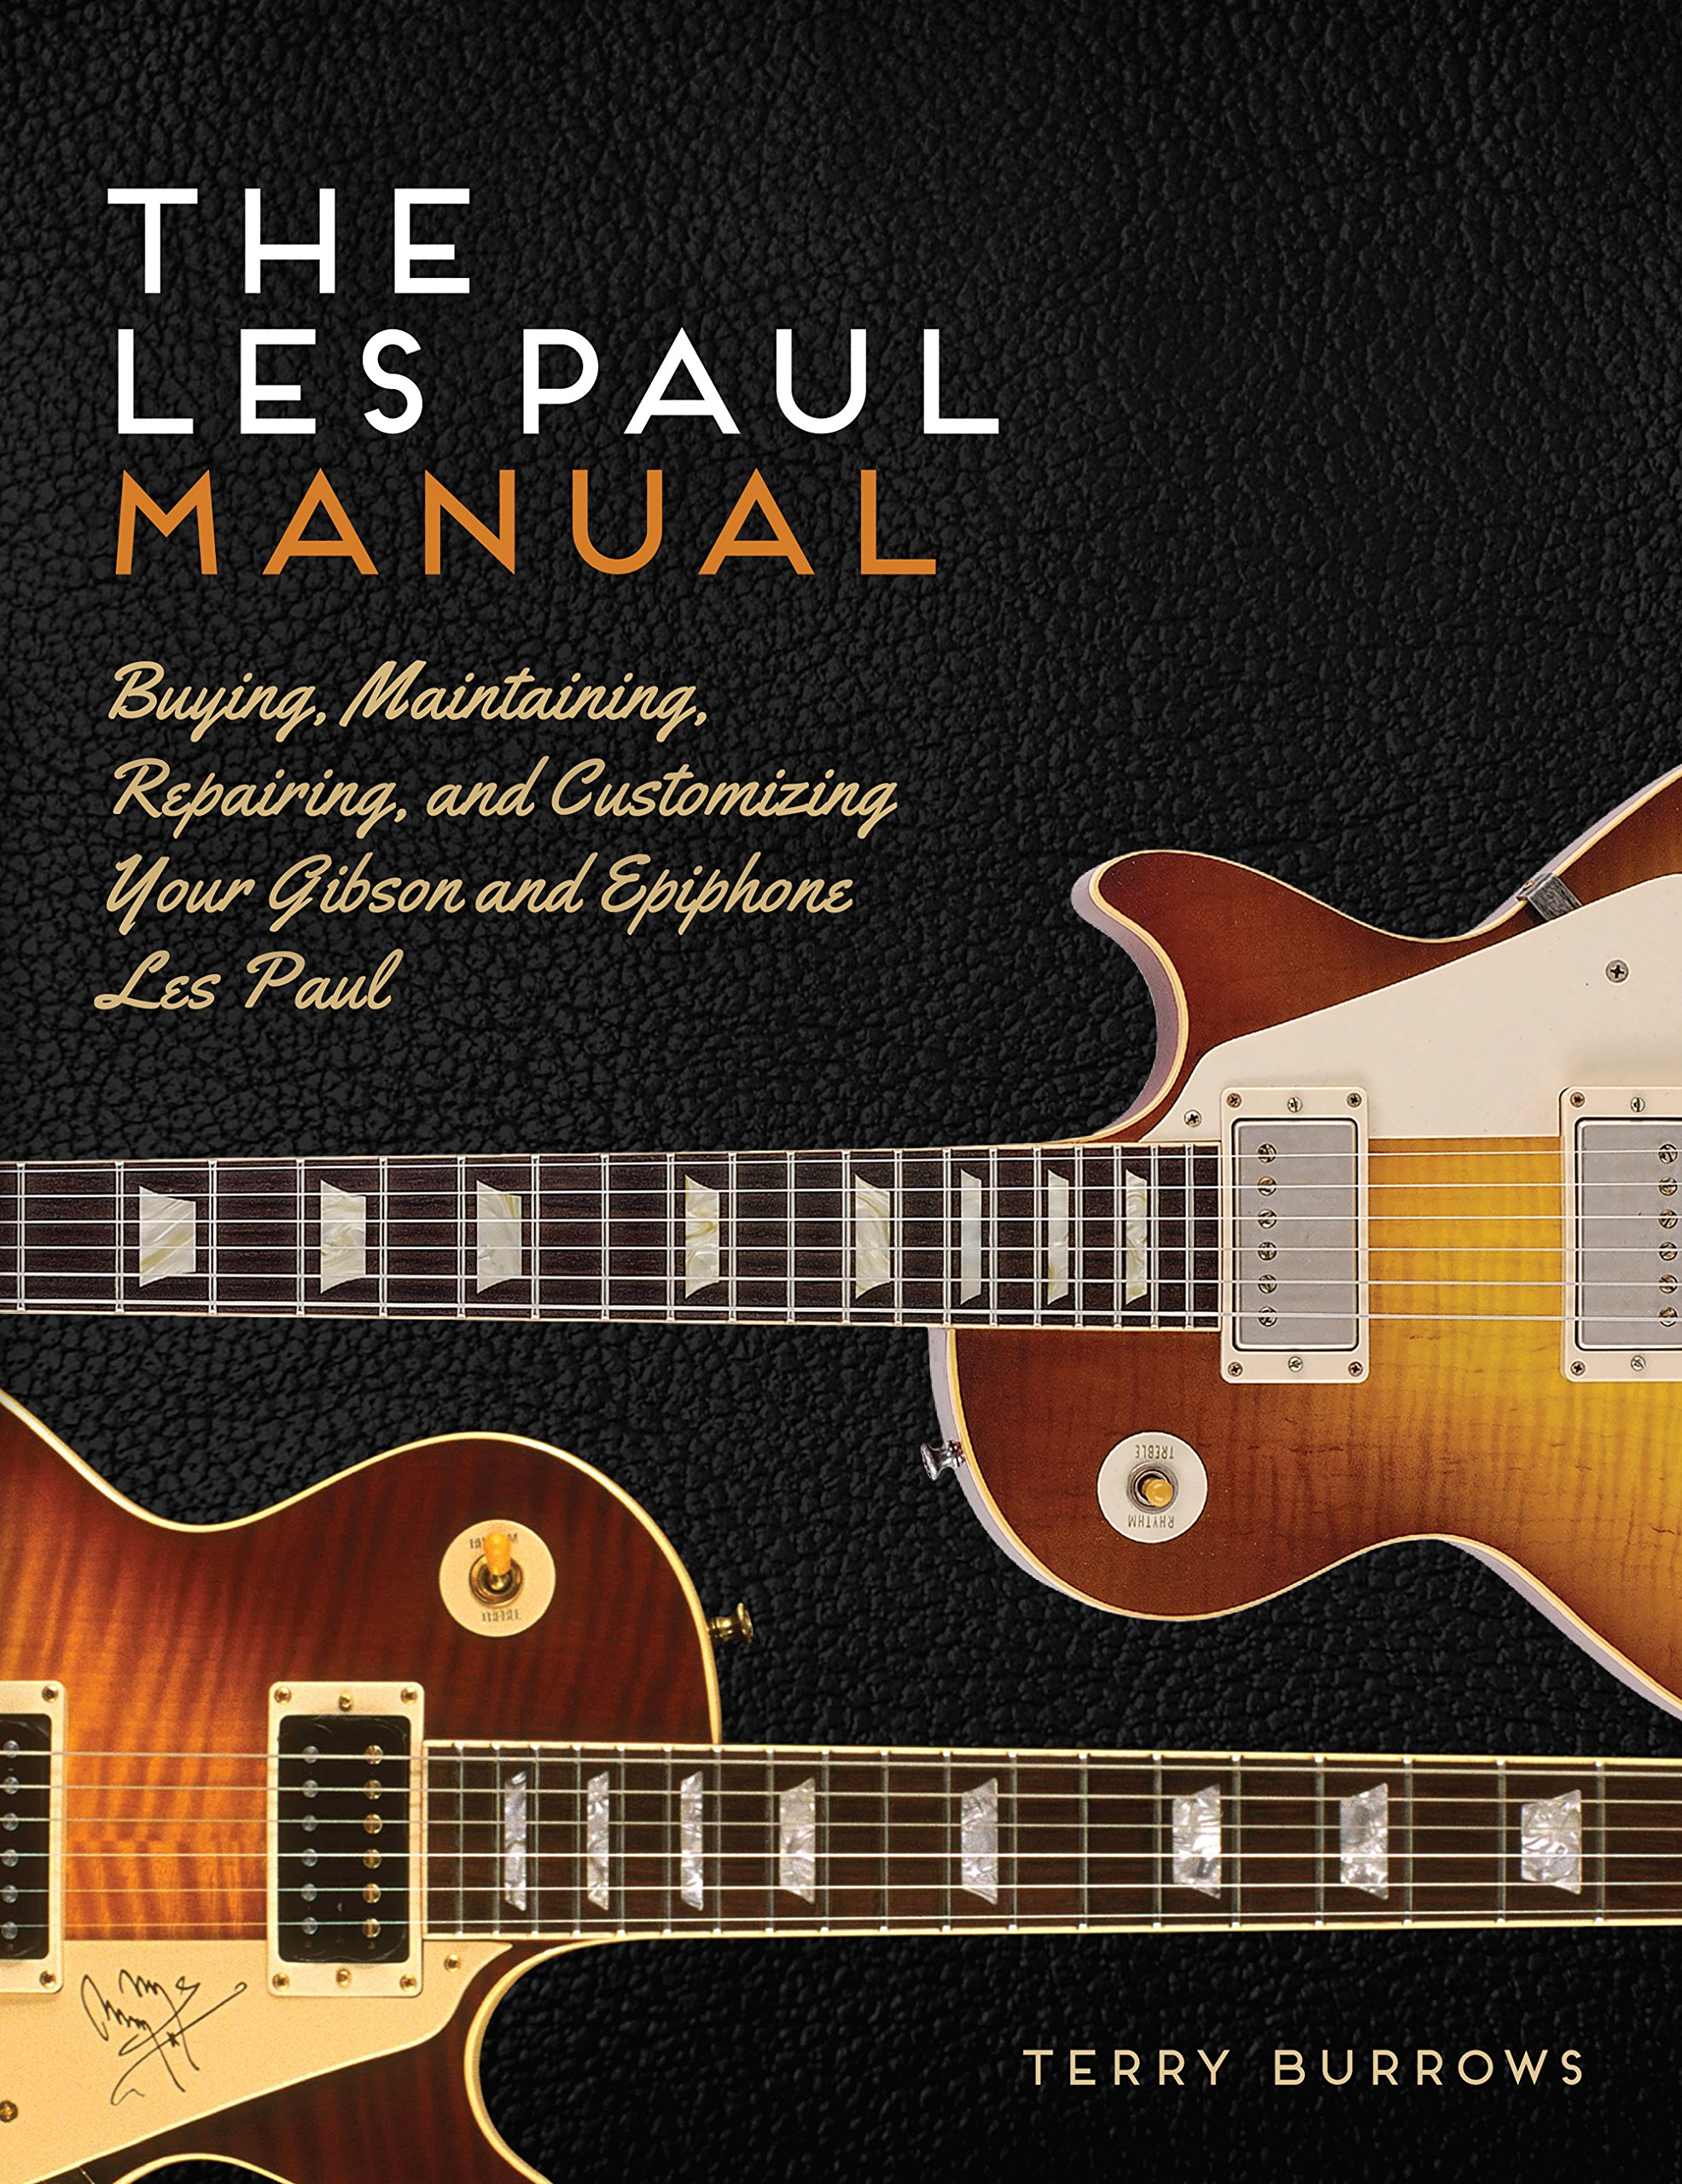 The Les Paul Manual: Buying, Maintaining, Repairing, and Customizing Your  Gibson and Epiphone Les Paul: Terry Burrows: 9780760349236: Amazon.com:  Books